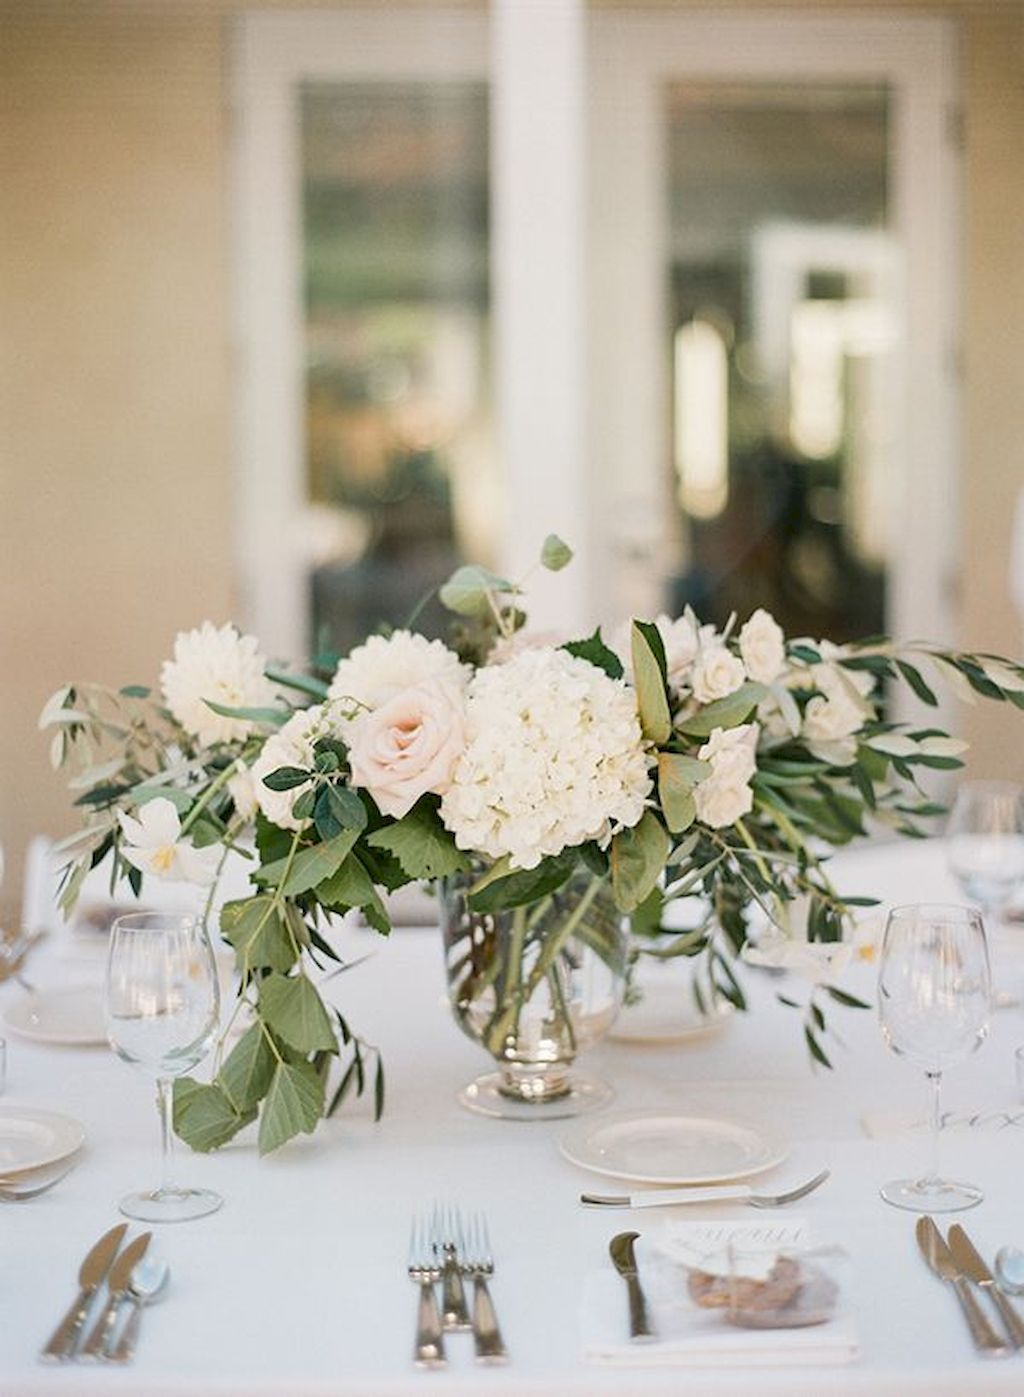 07 Simple White Flower Centerpieces Ideas Wedding In 2018